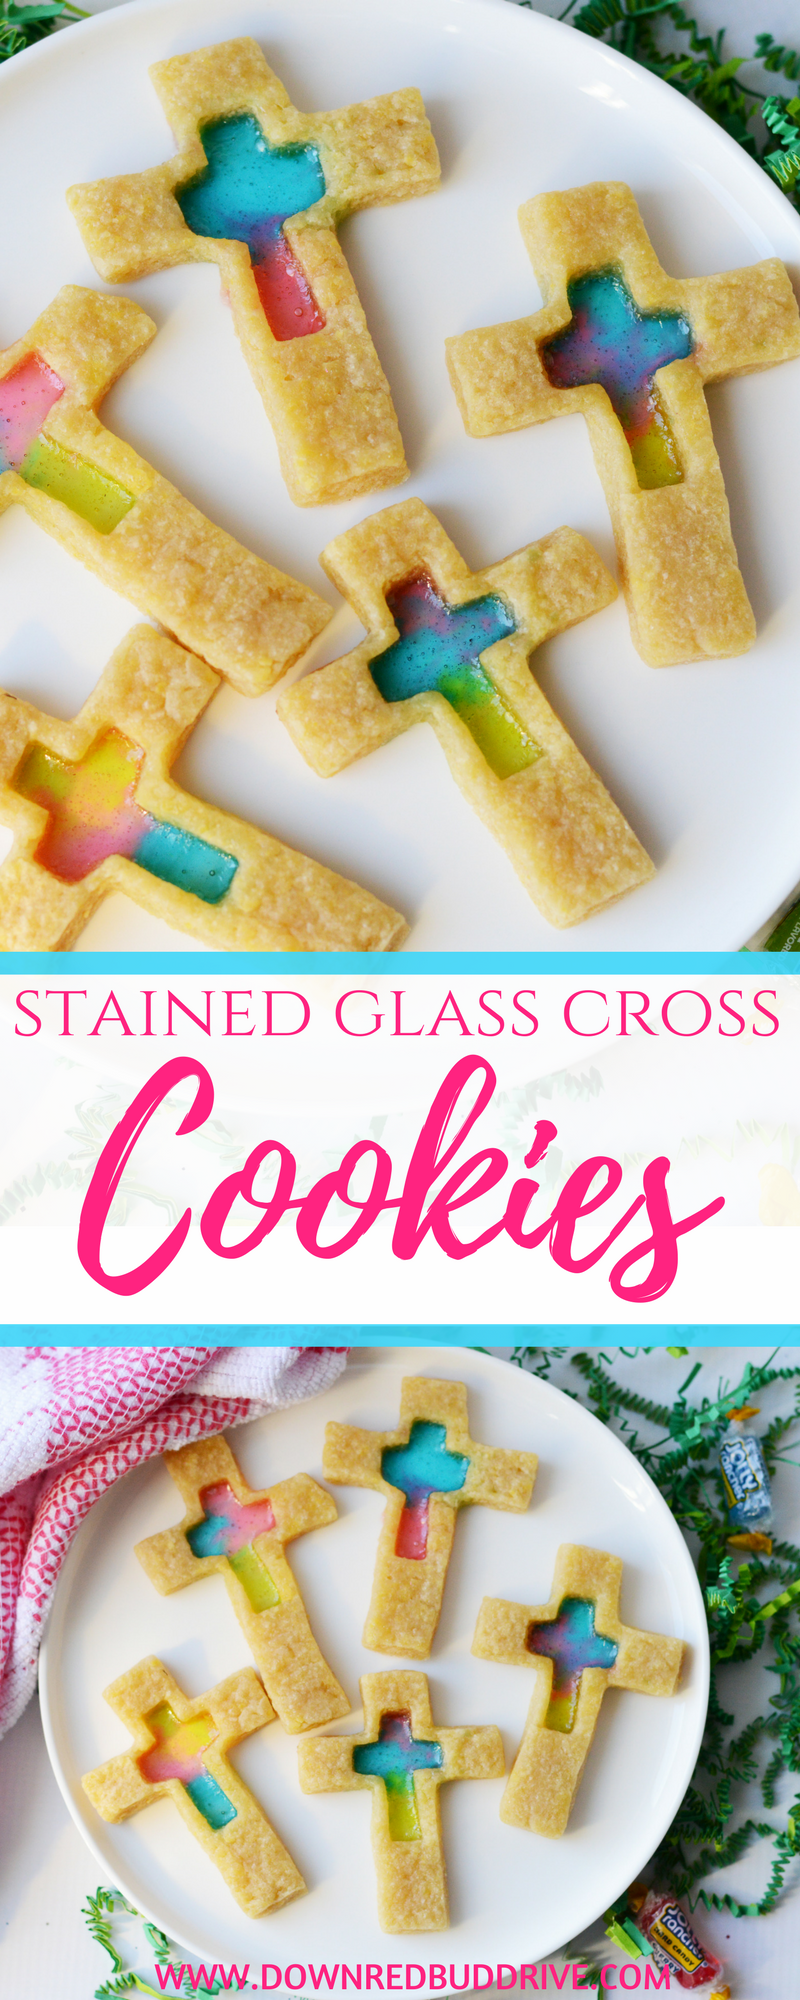 Stained Glass Cross Cookies Recipe Easter Dessert Recipes Easy Easy Easter Desserts Cross Cookies